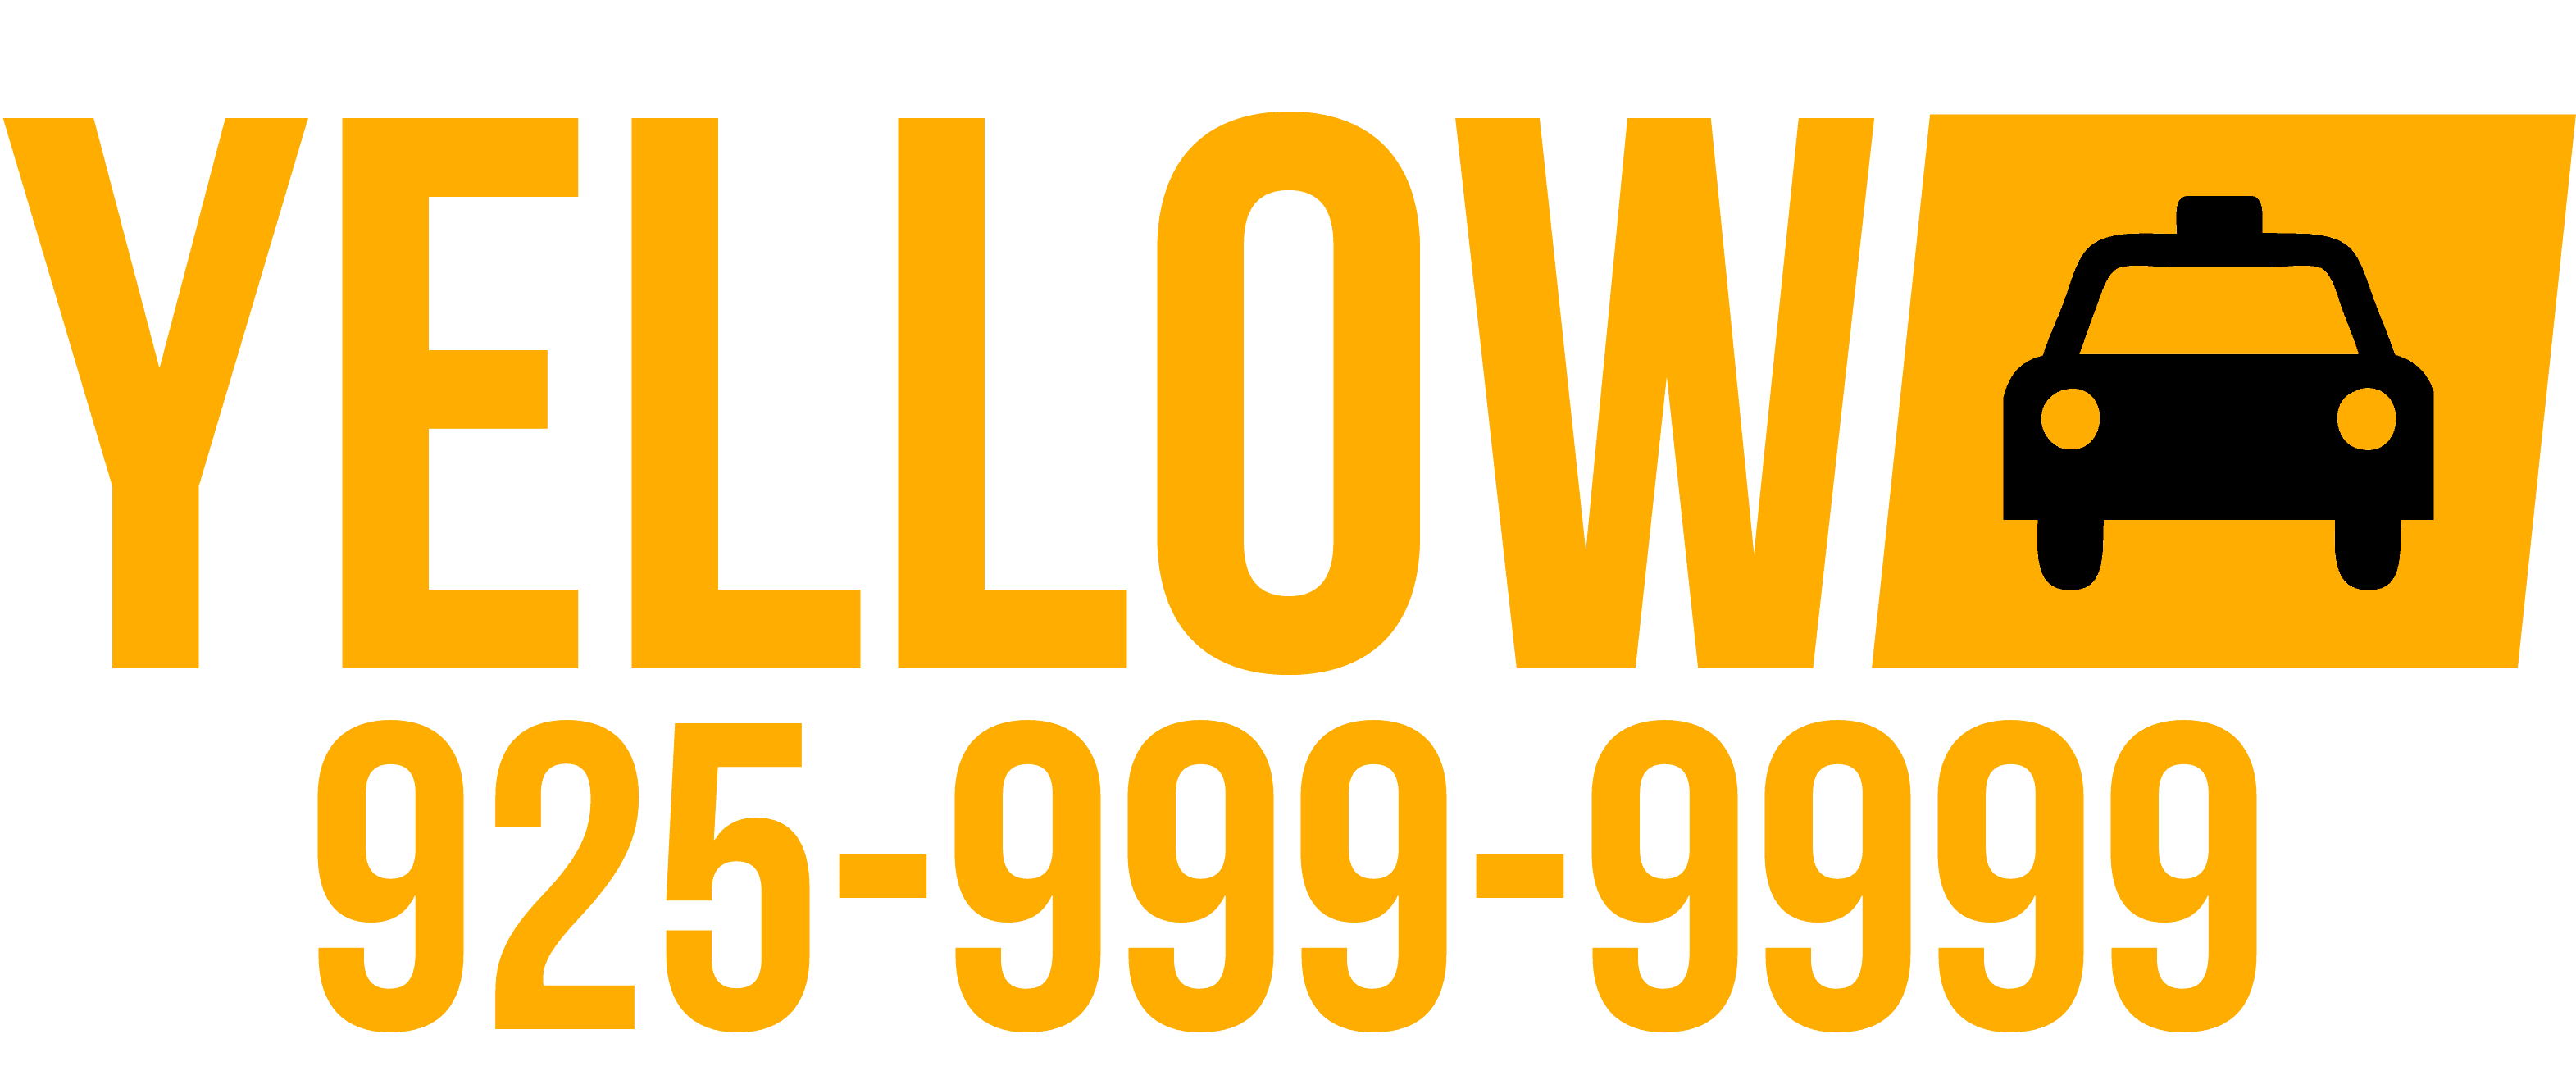 Yellow Cab Tri-Valley Logo and Phone Number 925-999-9999